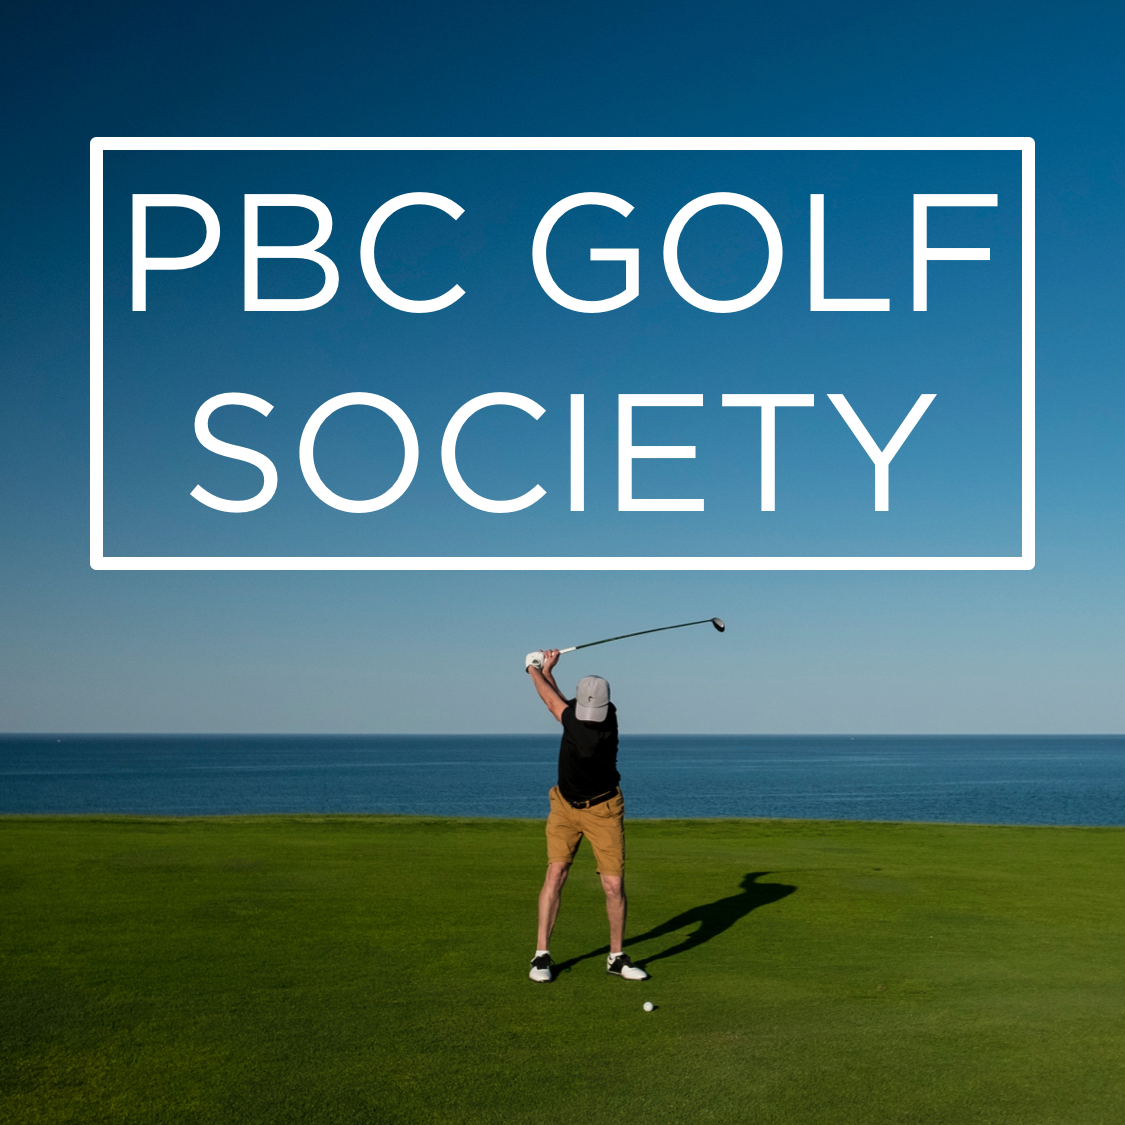 THE GOLF SOCIETY - Founded back in 1995, our golf society is welcome to men and women of all abilities.